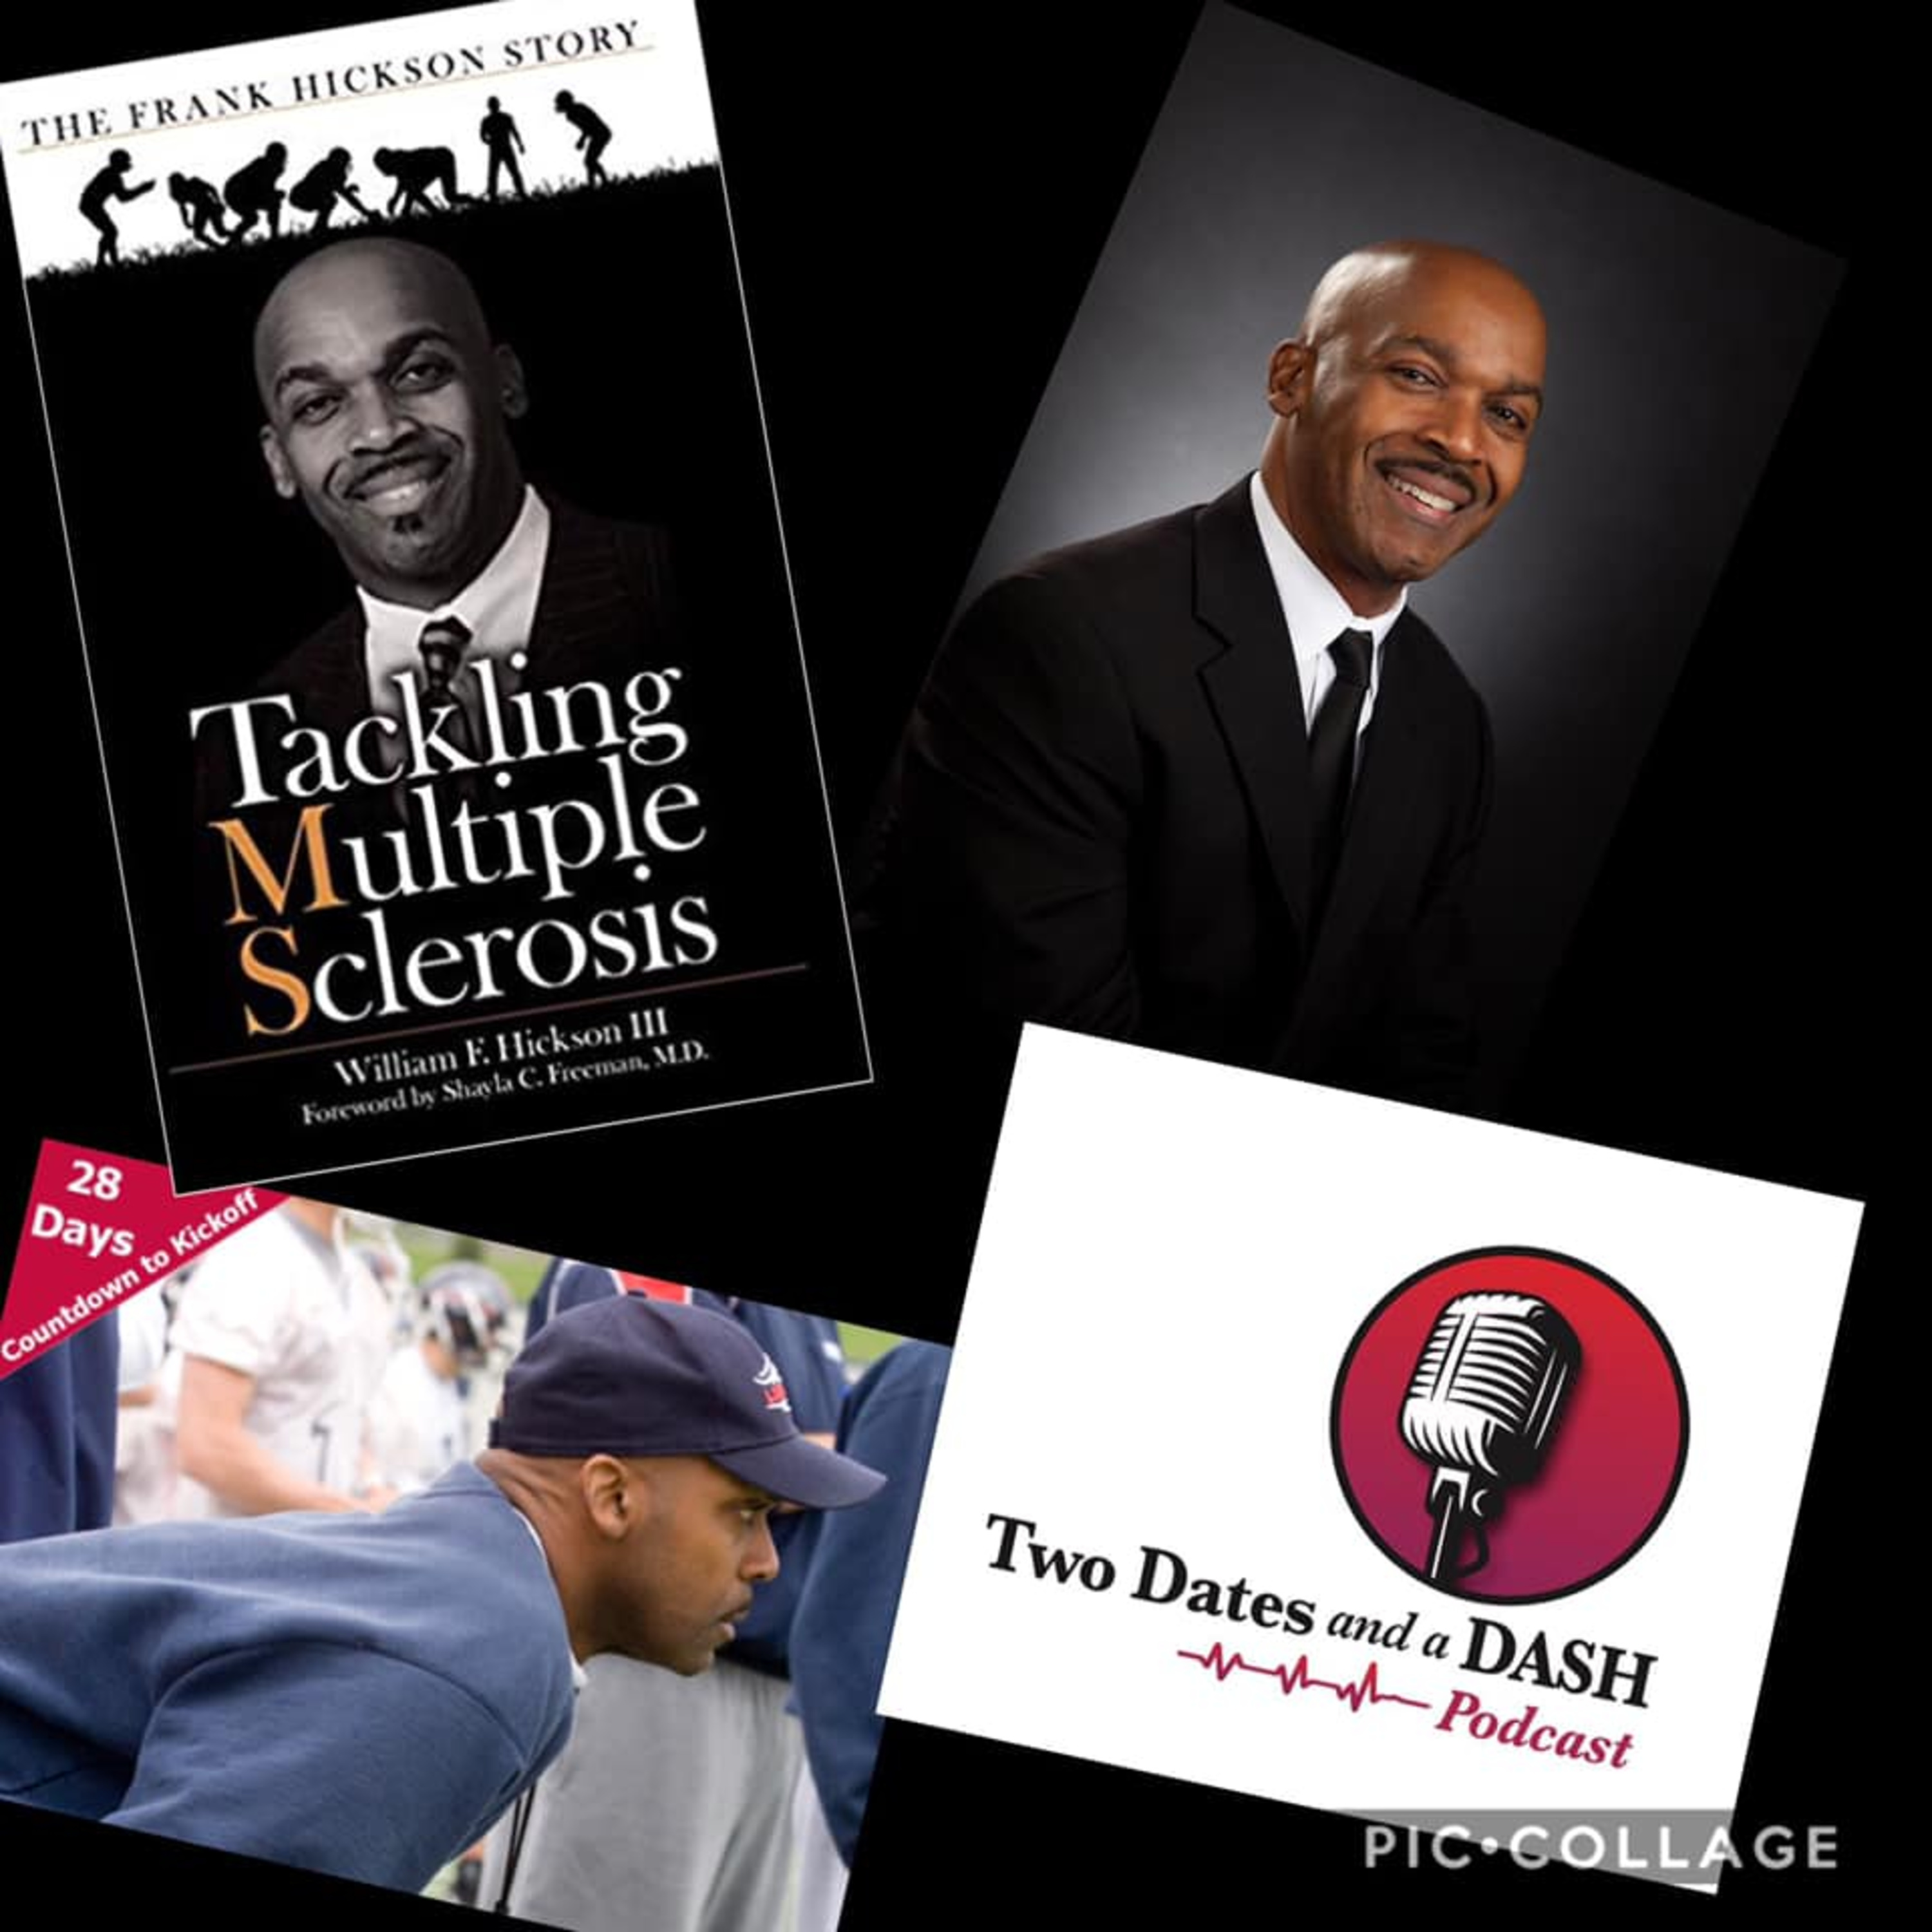 Two Dates and a Dash Podcast Episode 51: College Football Coach, Author and MS Warrior, Frank Hickson